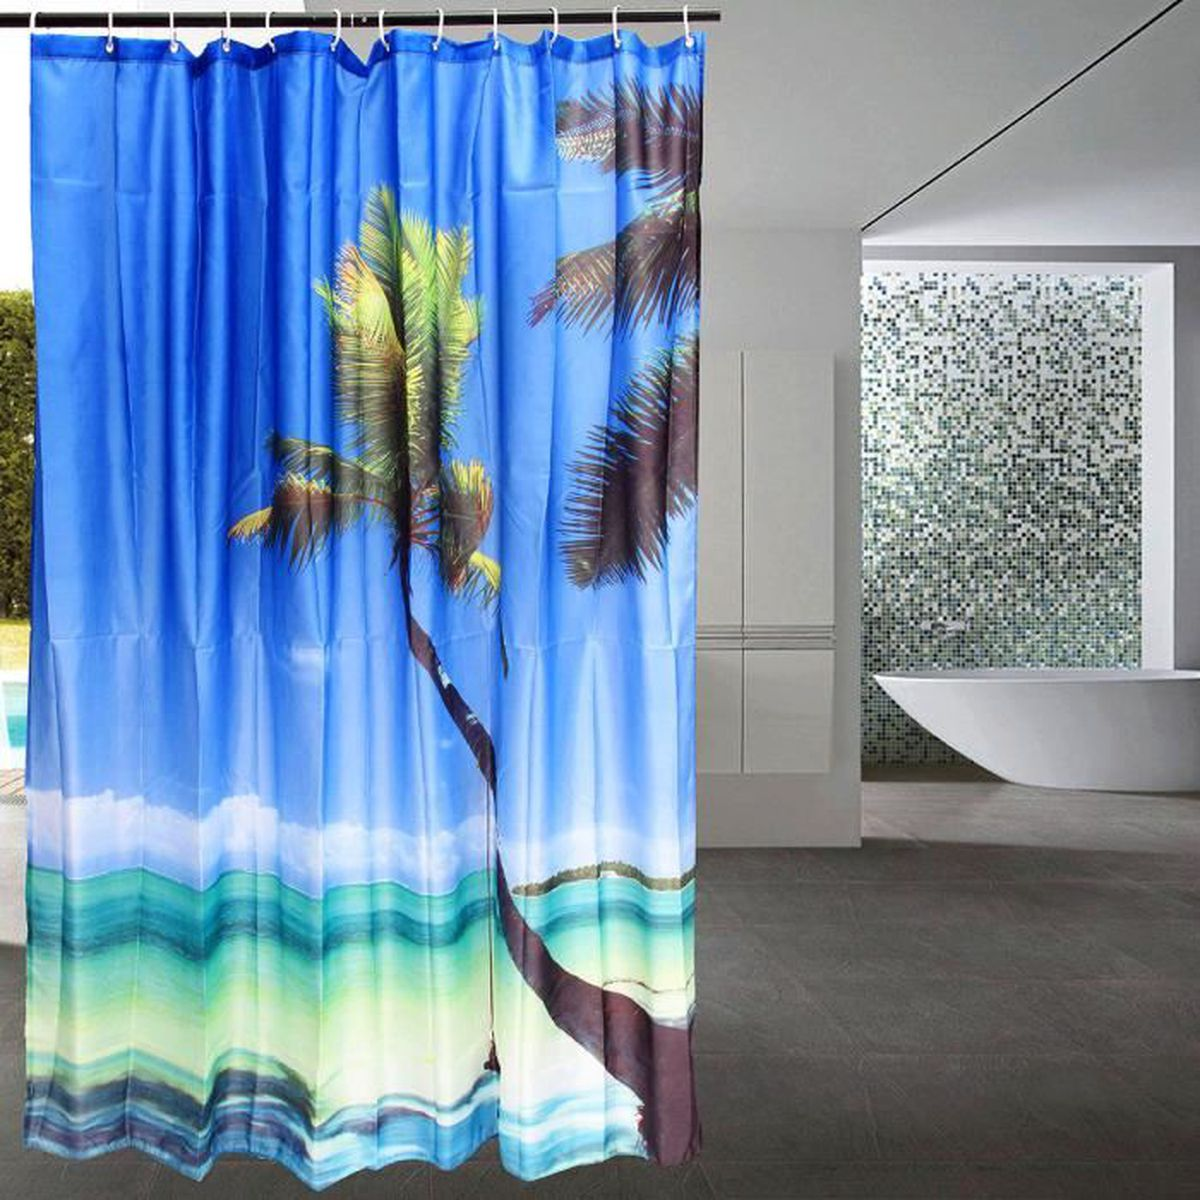 3d salle de bain rideau douche plage mer arbre paysage 12 crochet 180x180cm achat vente. Black Bedroom Furniture Sets. Home Design Ideas